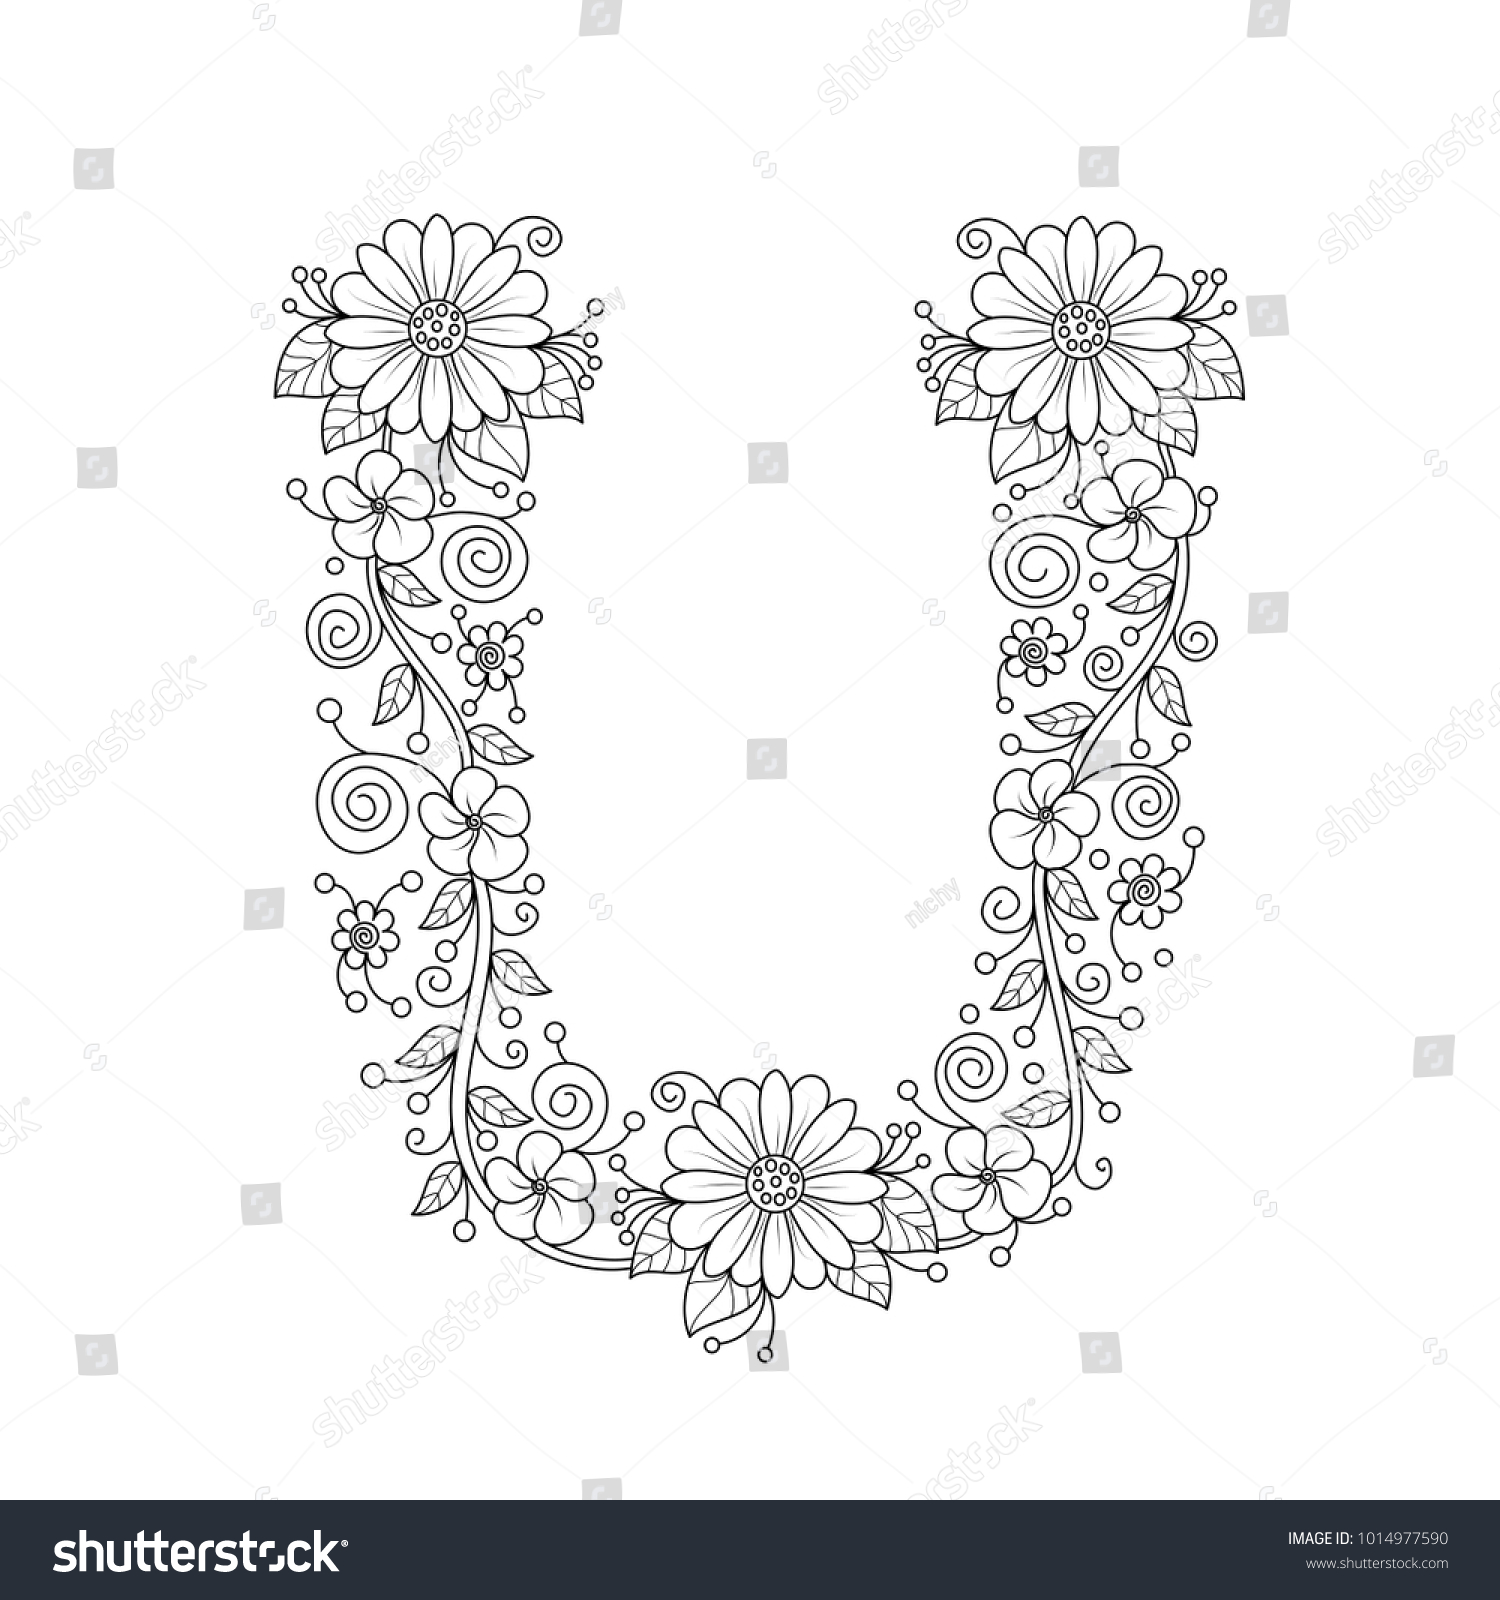 Floral Alphabet Letter U Coloring Book Stock Vector (Royalty Free ...